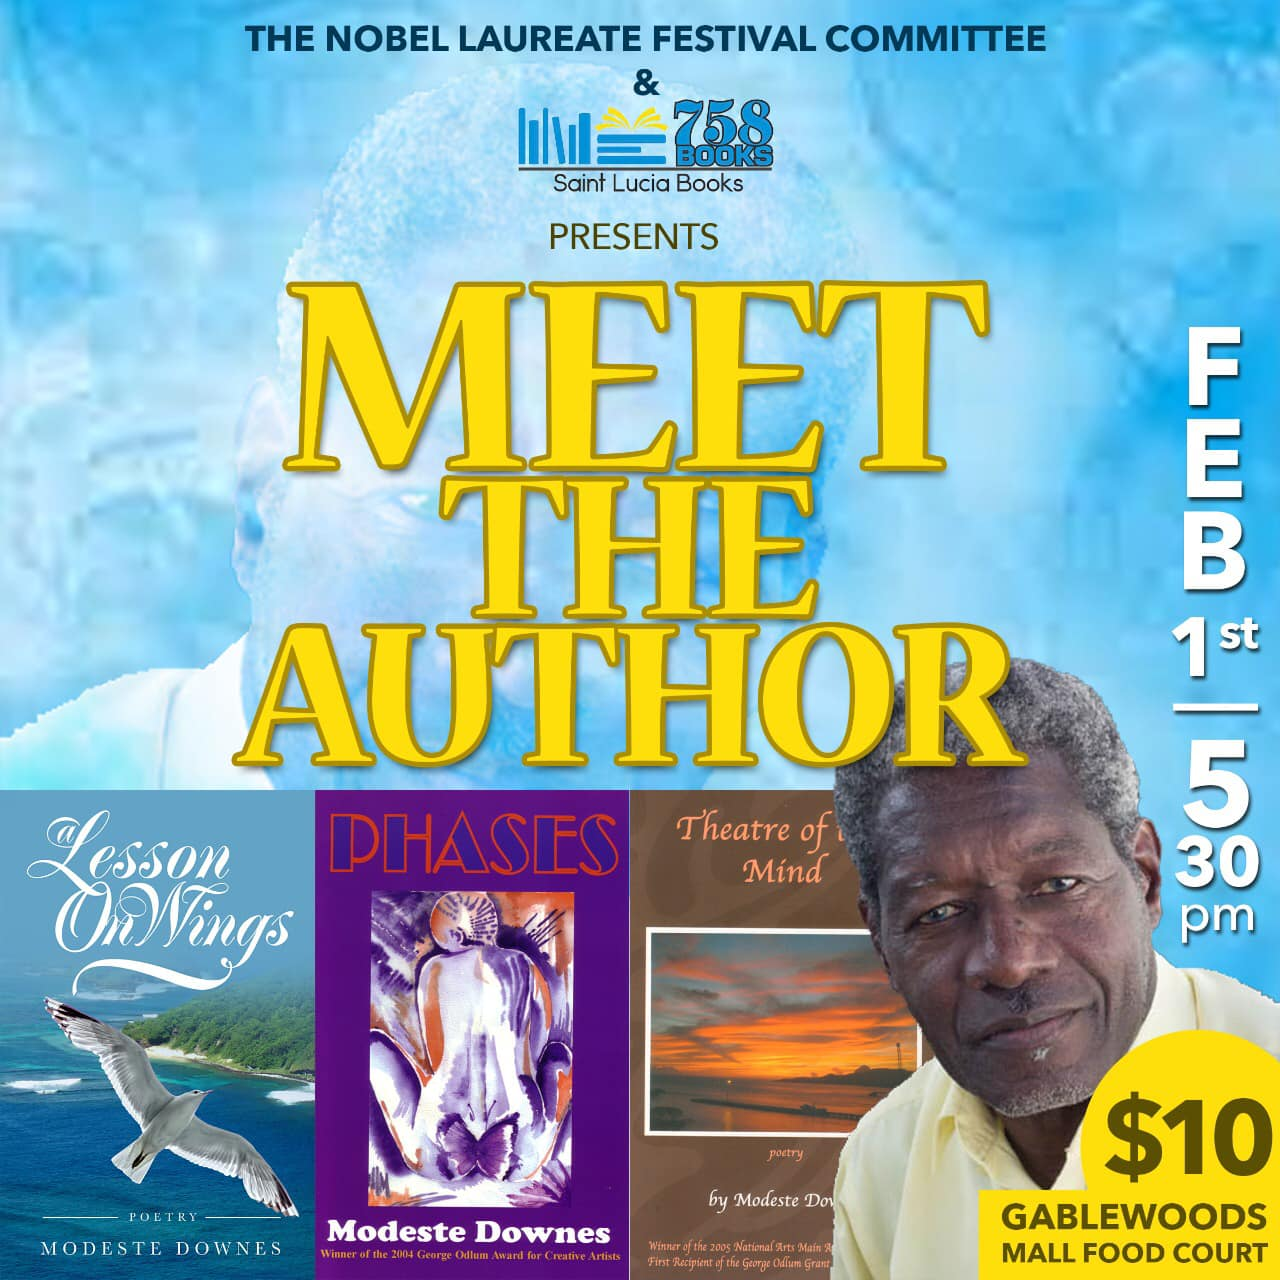 758 Books Cafe Litteraire Gablewoods Mall Meet the author series - modeste downes and friends